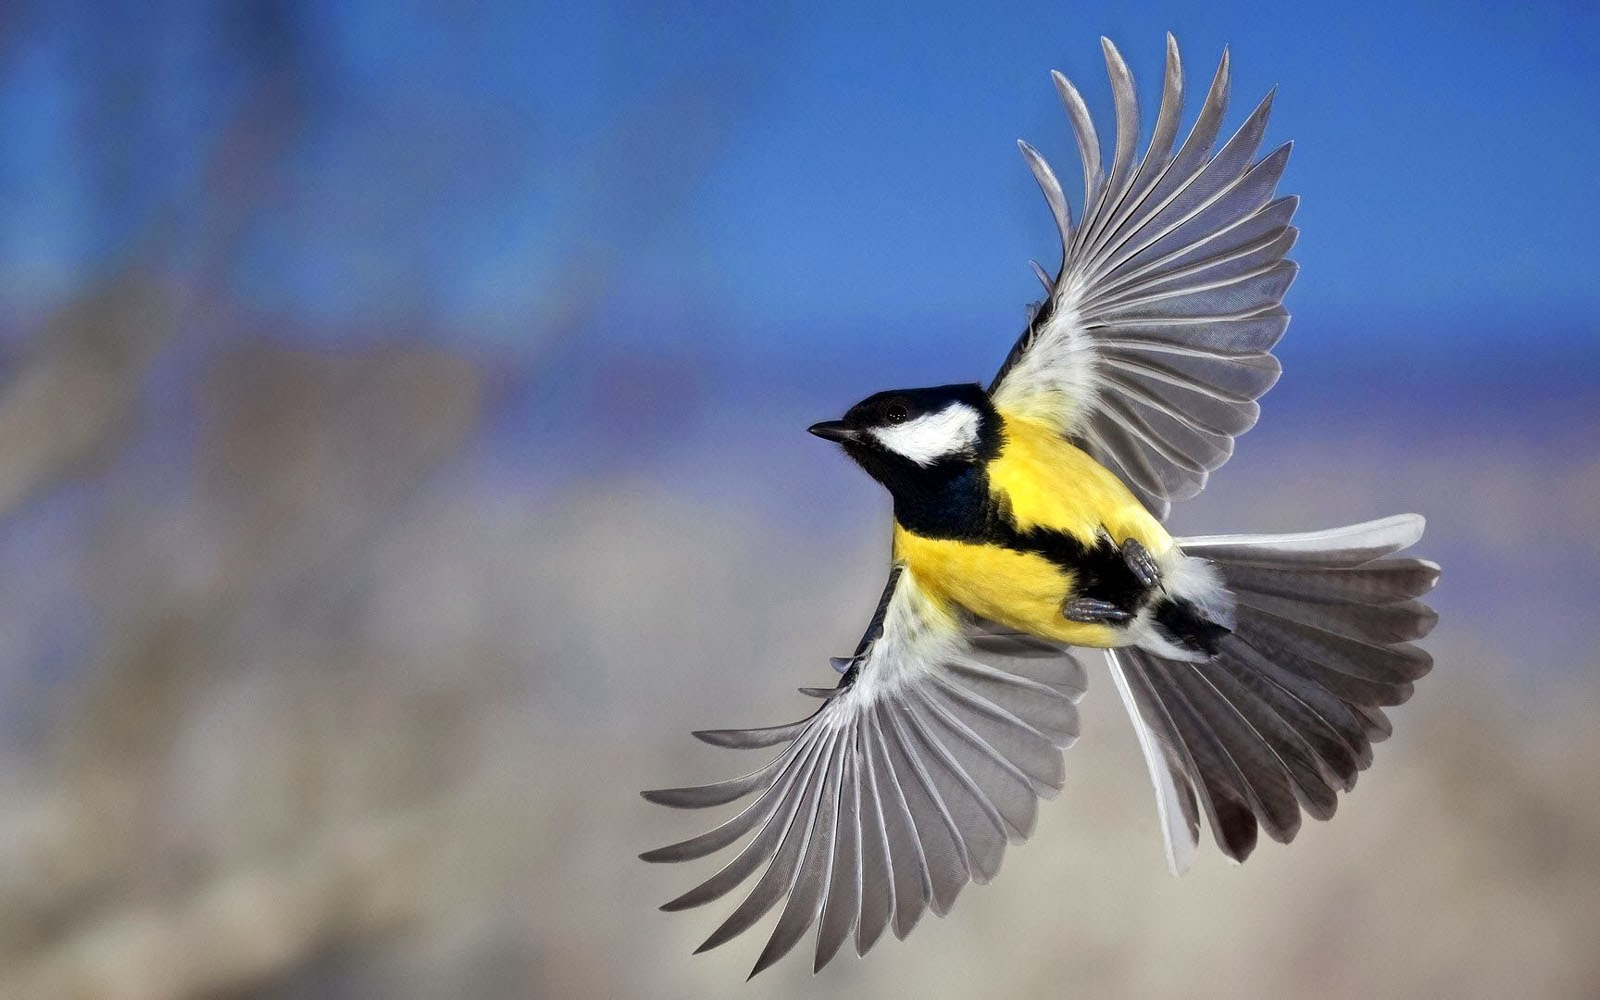 Tag Flying Birds Wallpapers Backgrounds Photos Imagesand Pictures